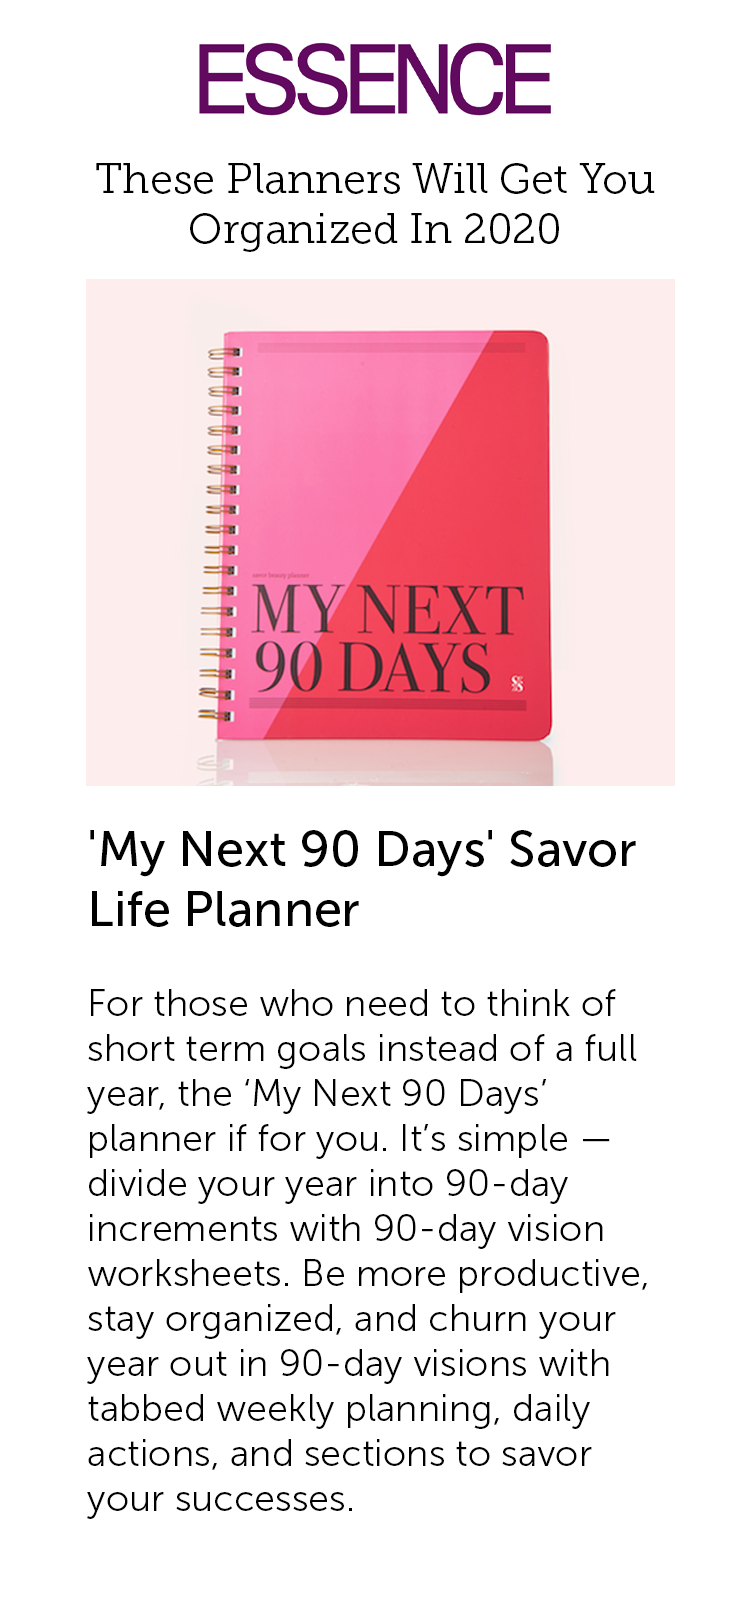 Essence: These Planners Will Get You Organized In 2020